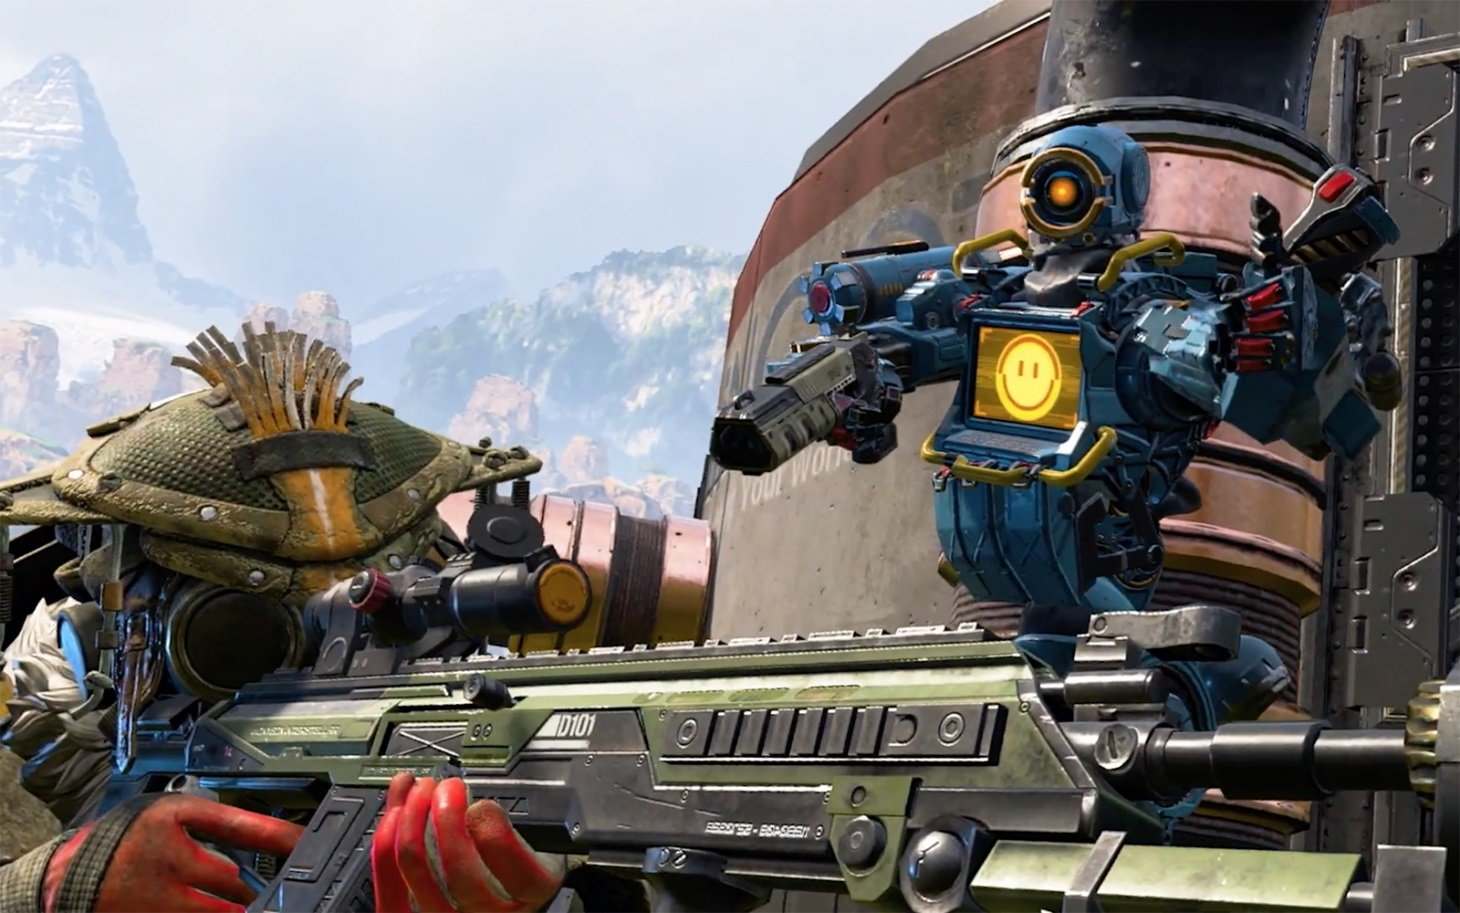 EA reportedly paid Ninja $1 million to promote Apex Legends screenshot